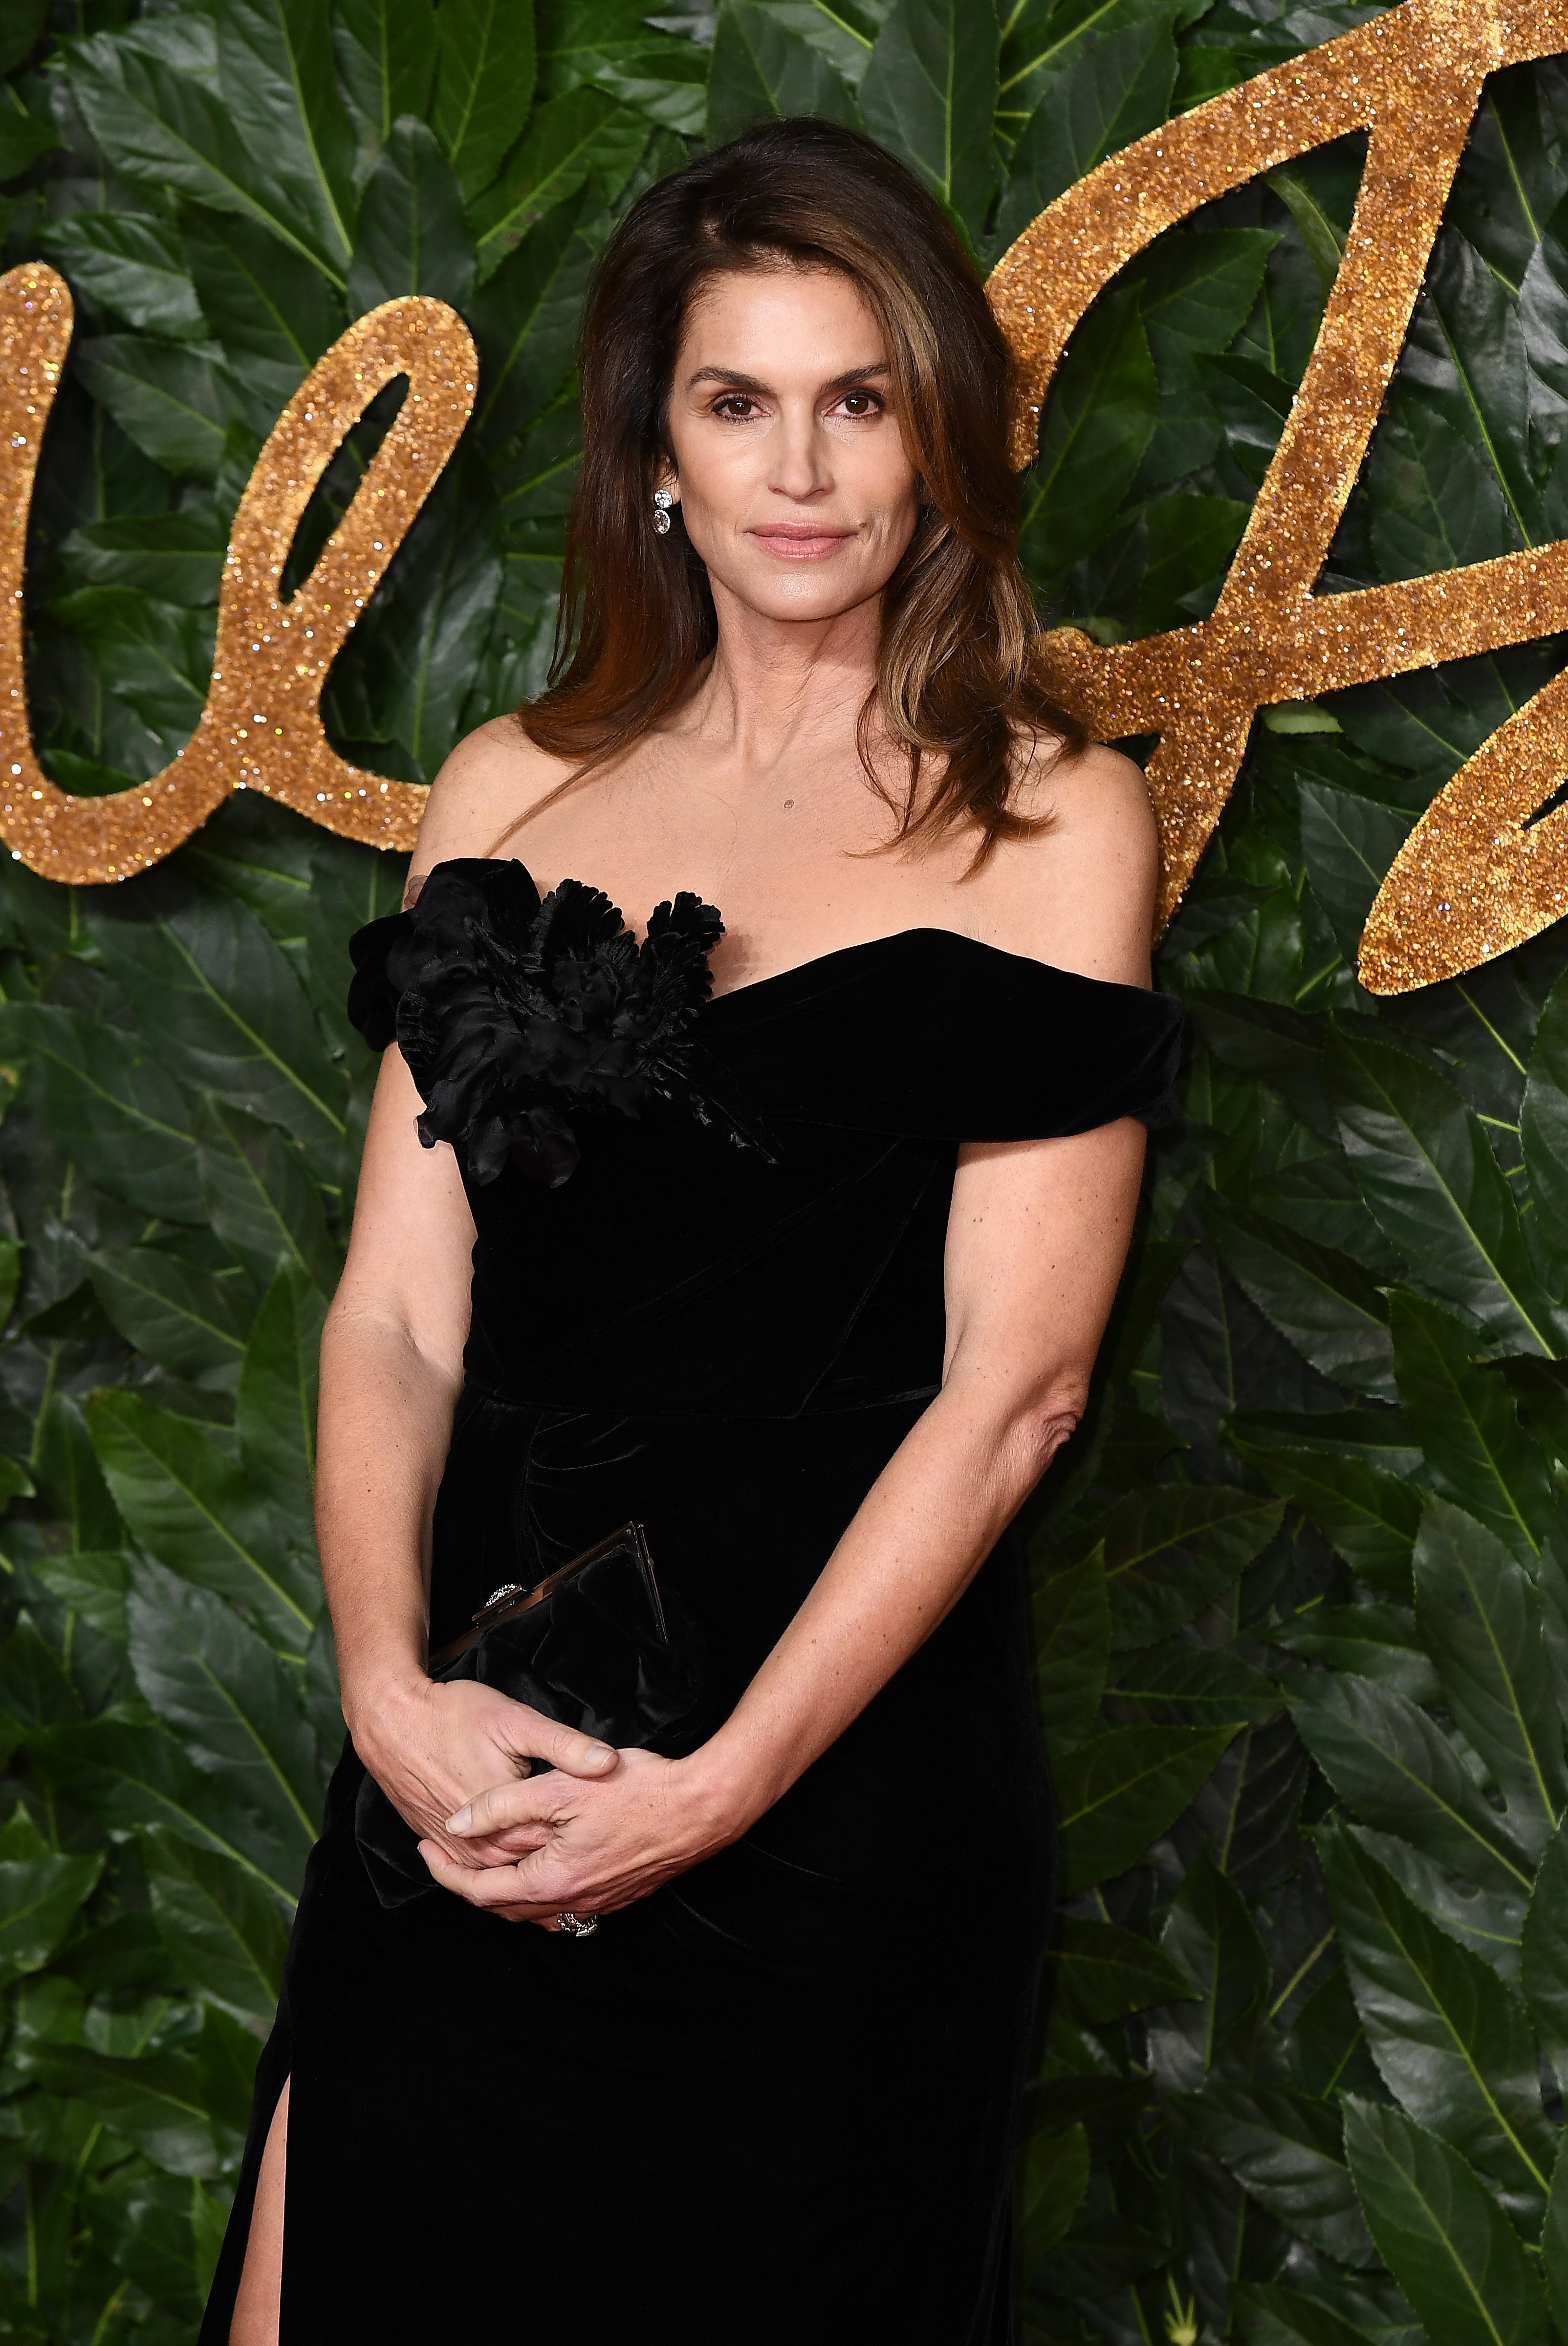 Cindy Crawford arrives at The Fashion Awards 2018 at Royal Albert Hall on December 10, 2018 in London, England | Photo: Getty Images